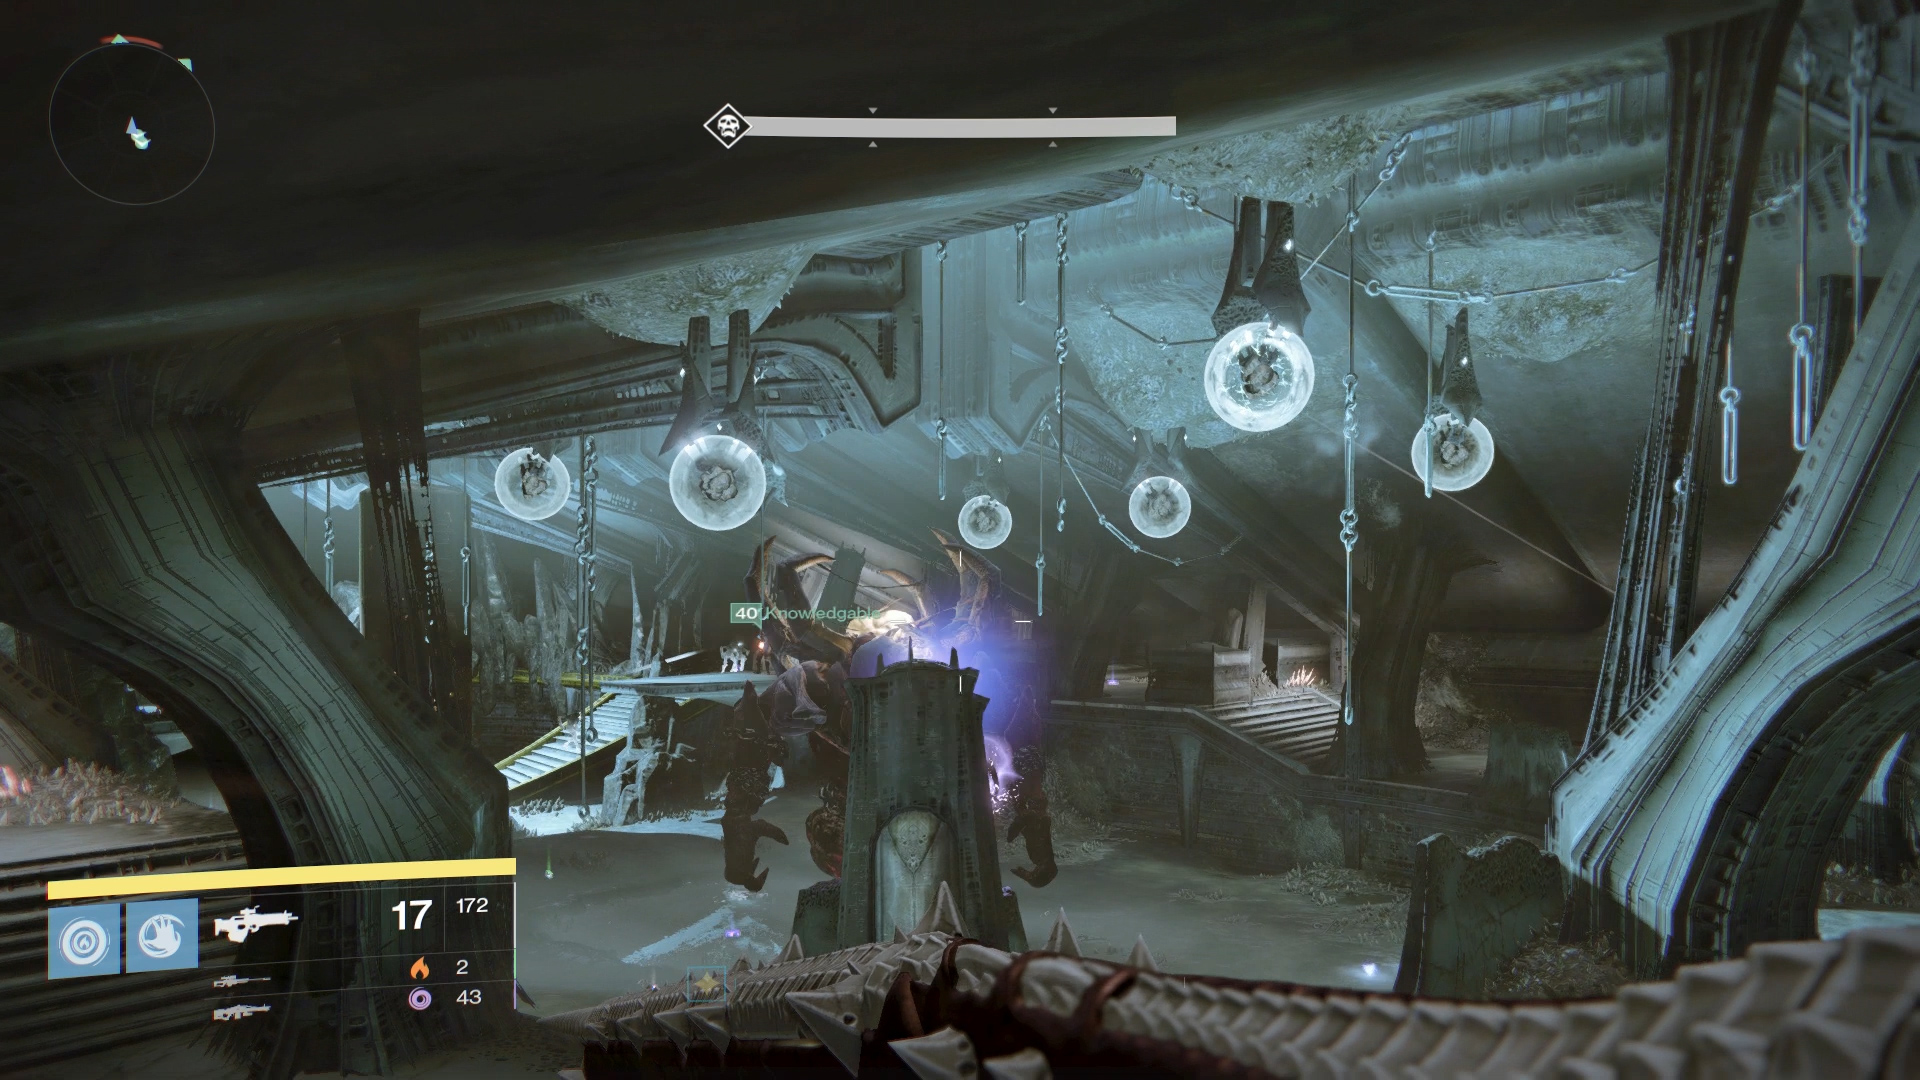 Having a player distract Golgoroth can help him turn around, allowing you easy access to his back - the part you must shoot to capture his Gaze.